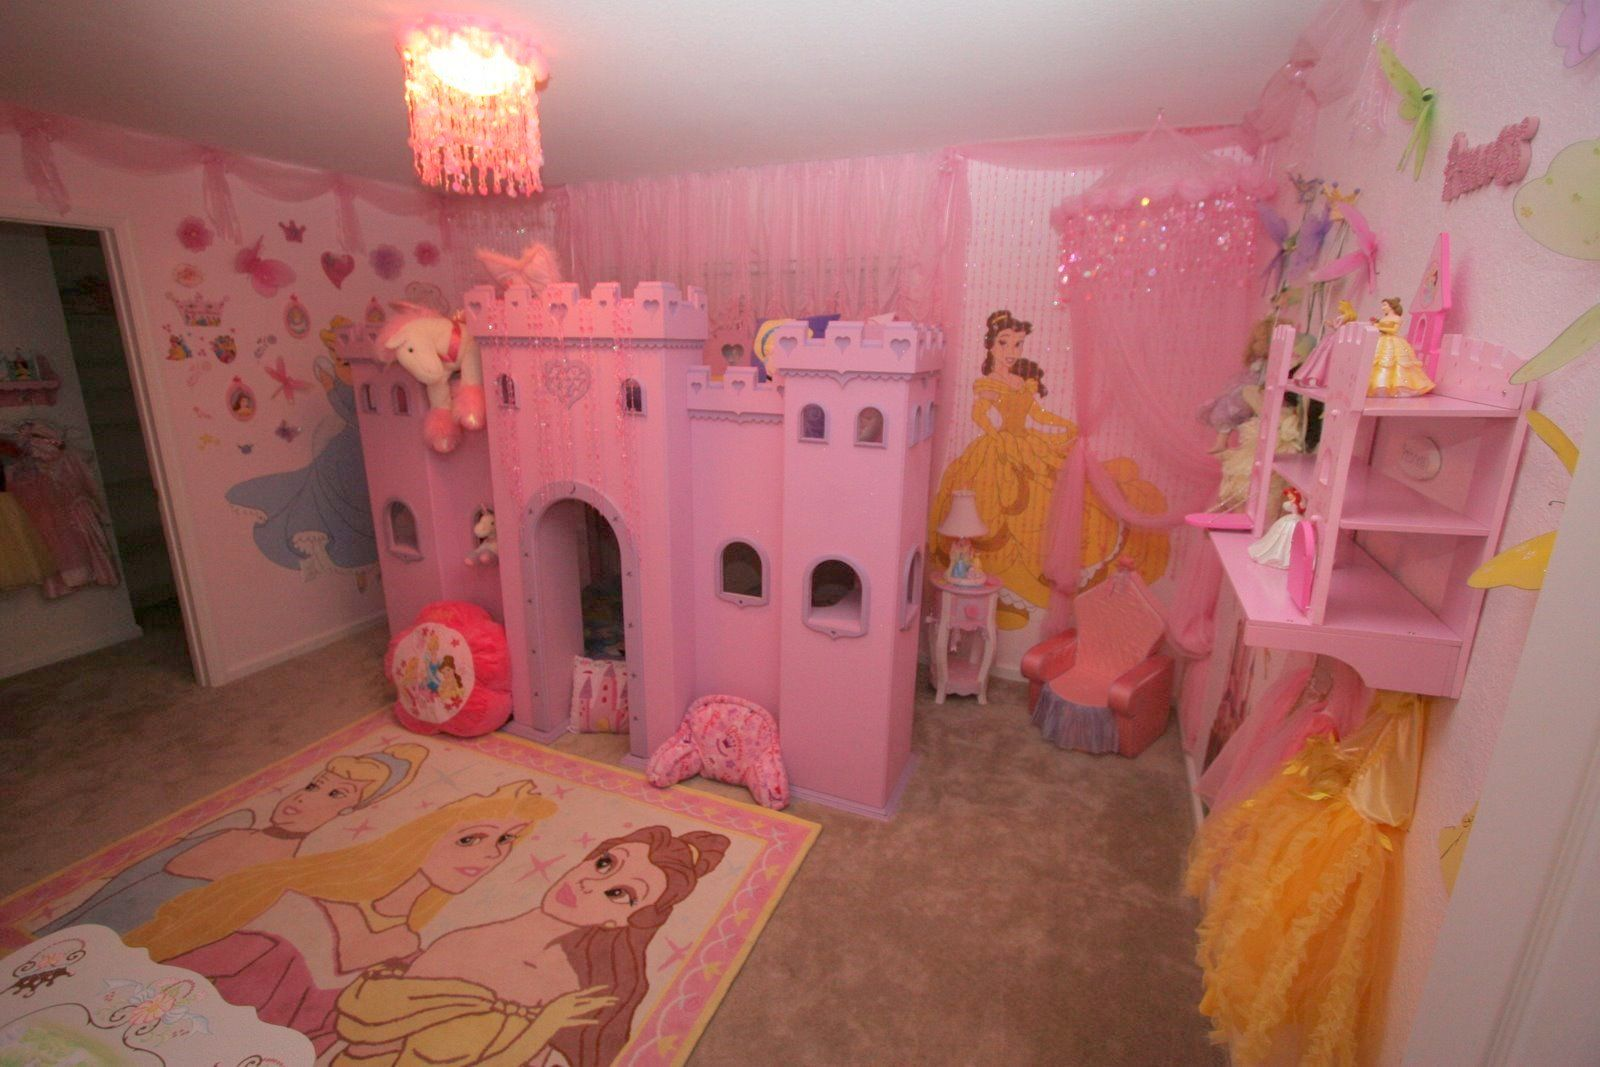 Disney room ideas dsny home one dsny1 girls bedroom accessories princess